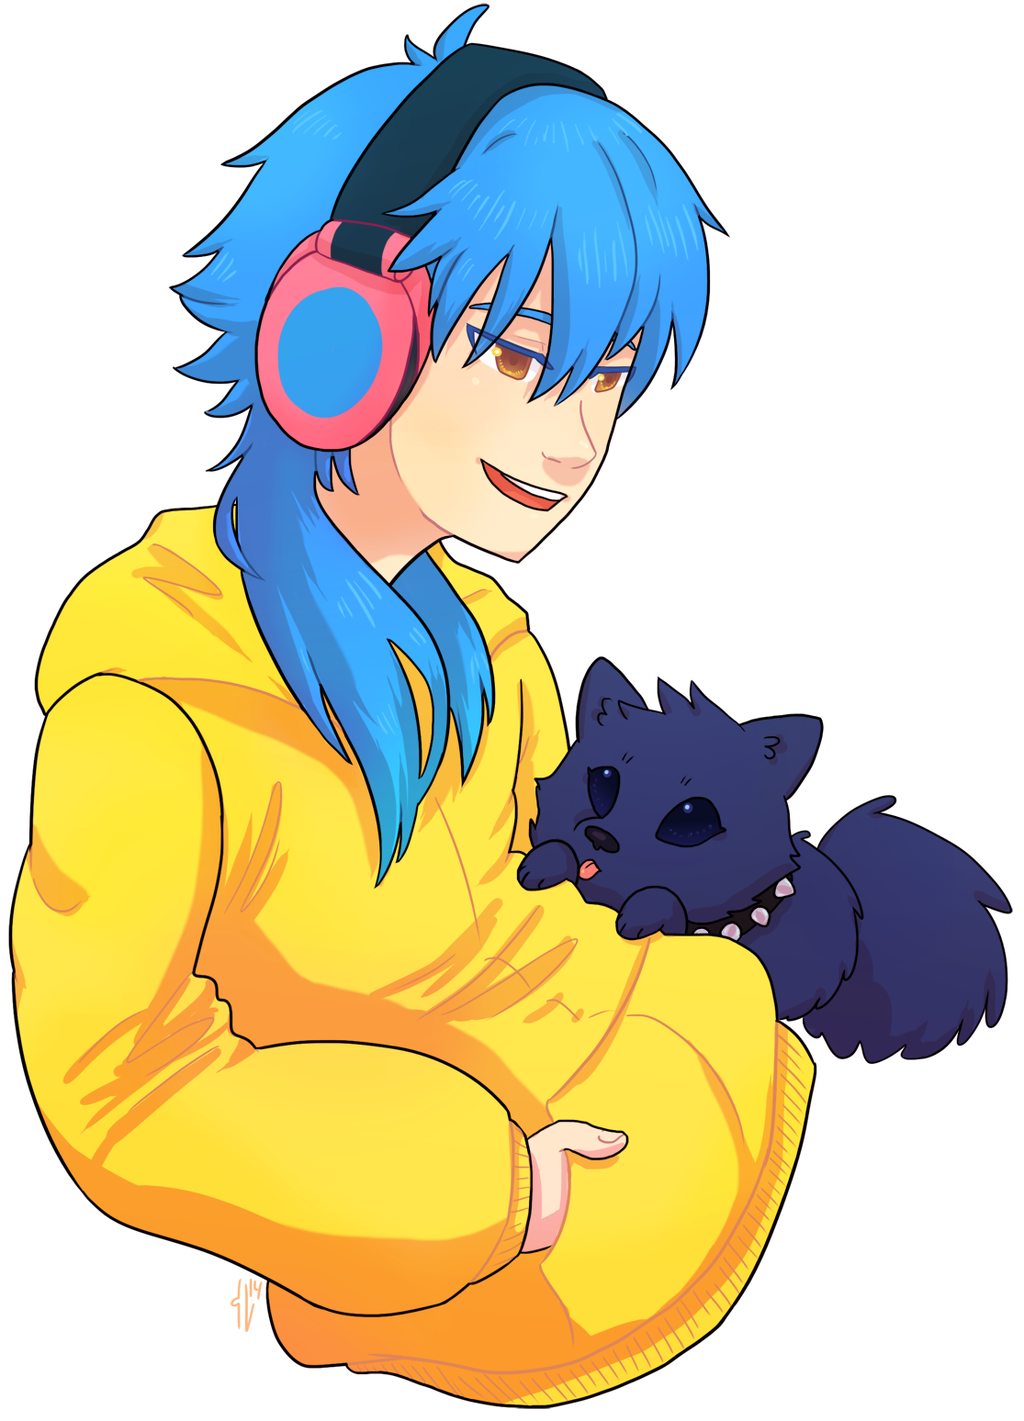 Featured image: Aoba and Ren